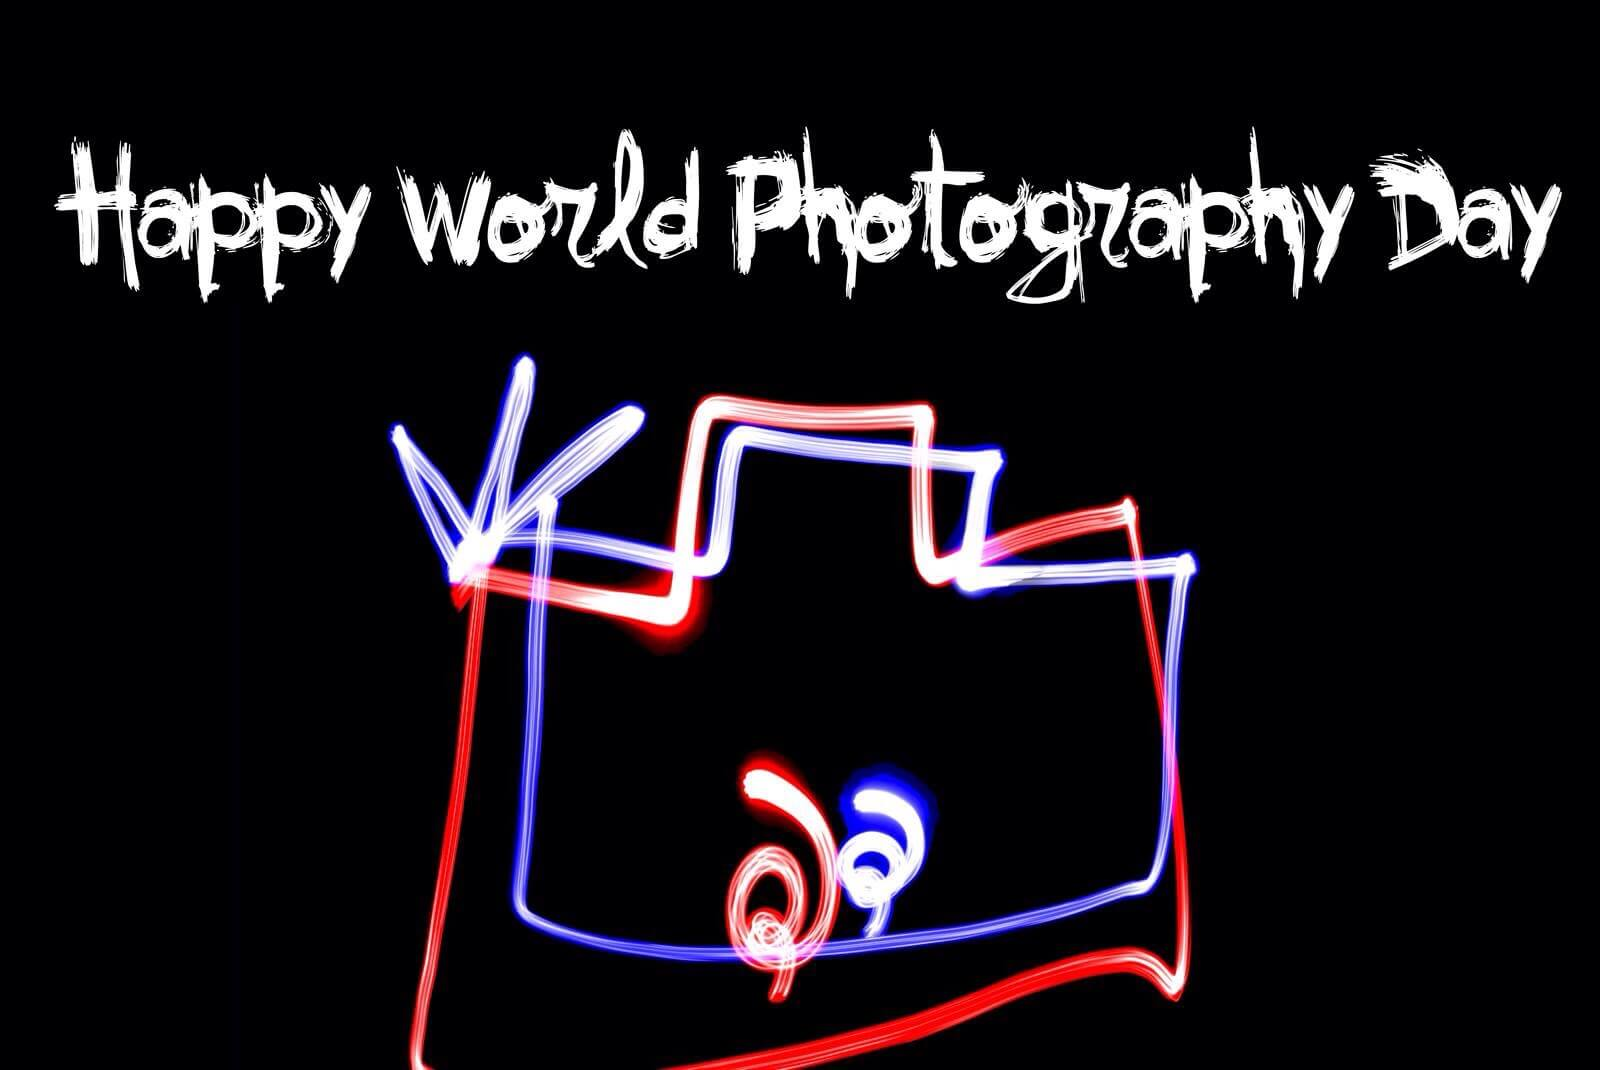 world photography day glowing camera icons wallpaper